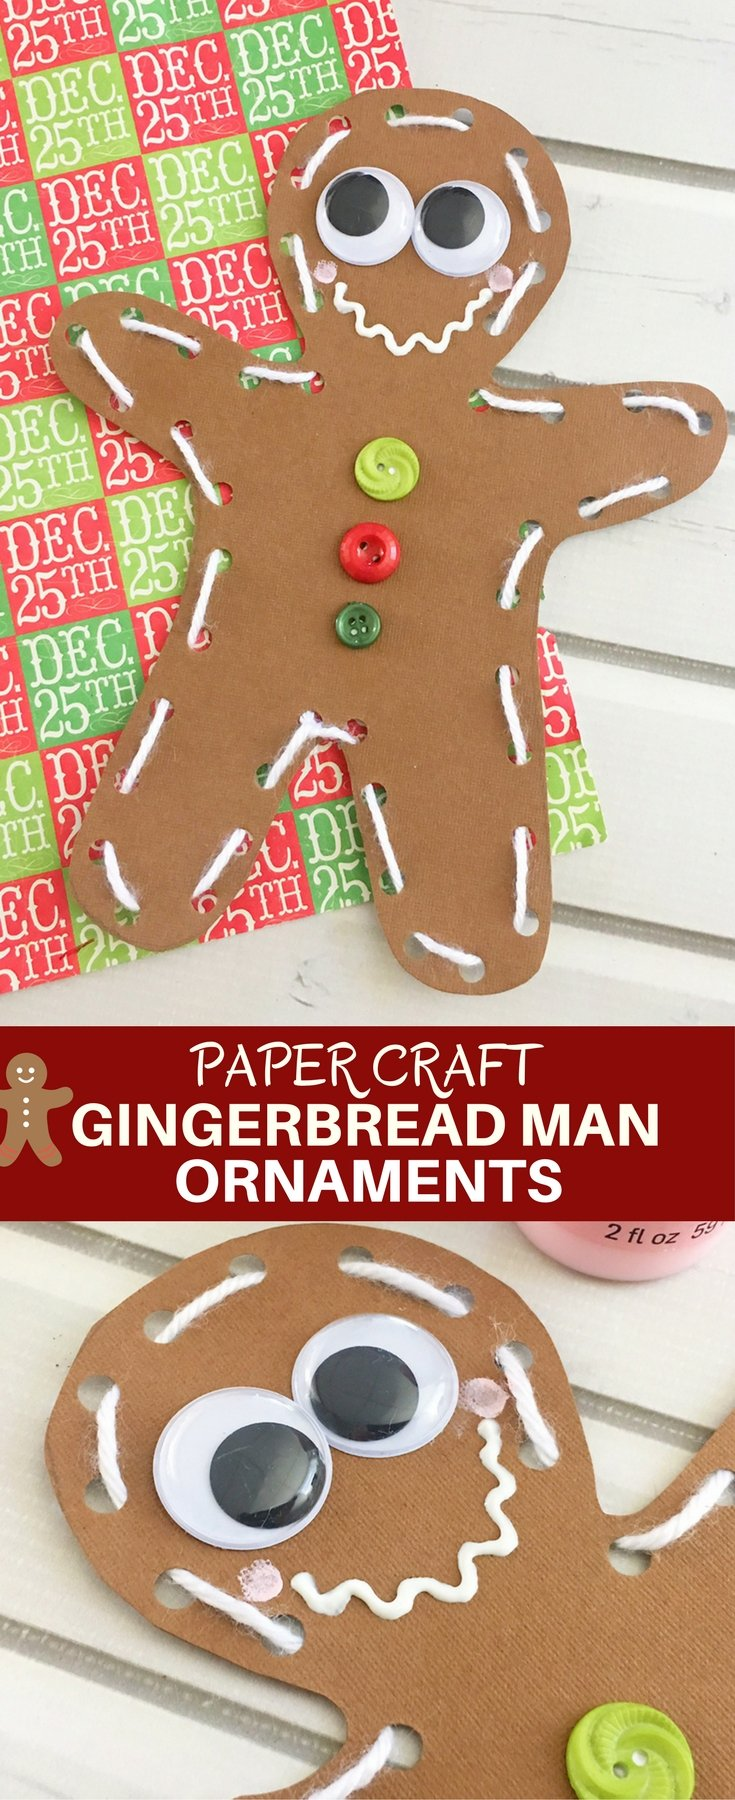 DIY Gingerbread Man Ornaments are an easy and fun holiday activity that will keep the little ones busy for hours! Use as tree ornaments, gift tags or holiday dinner placecards!